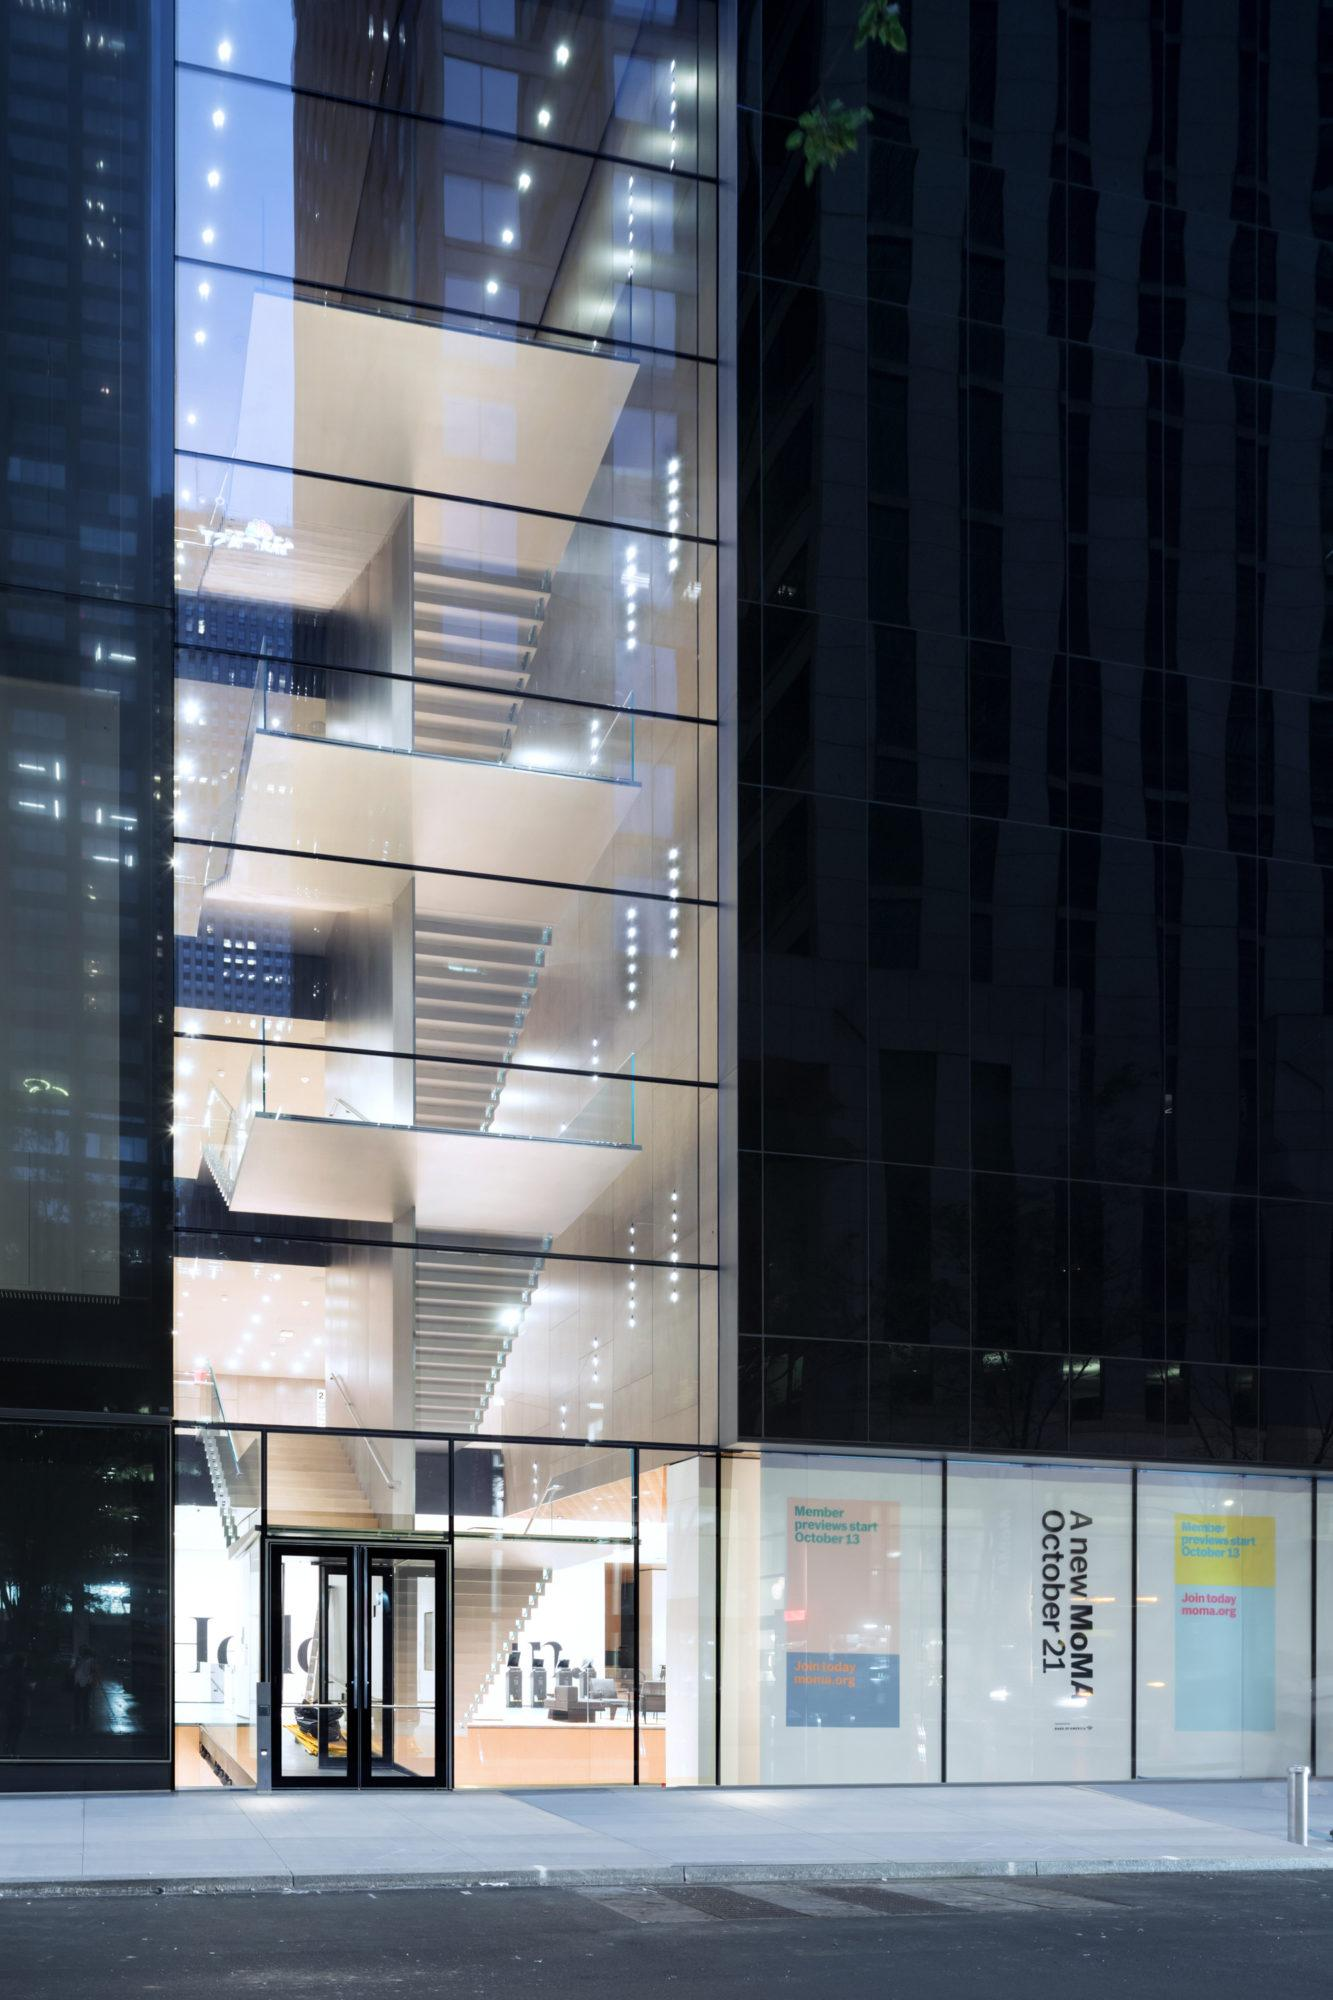 The Museum of Modern Art renovation and expansion project exterior